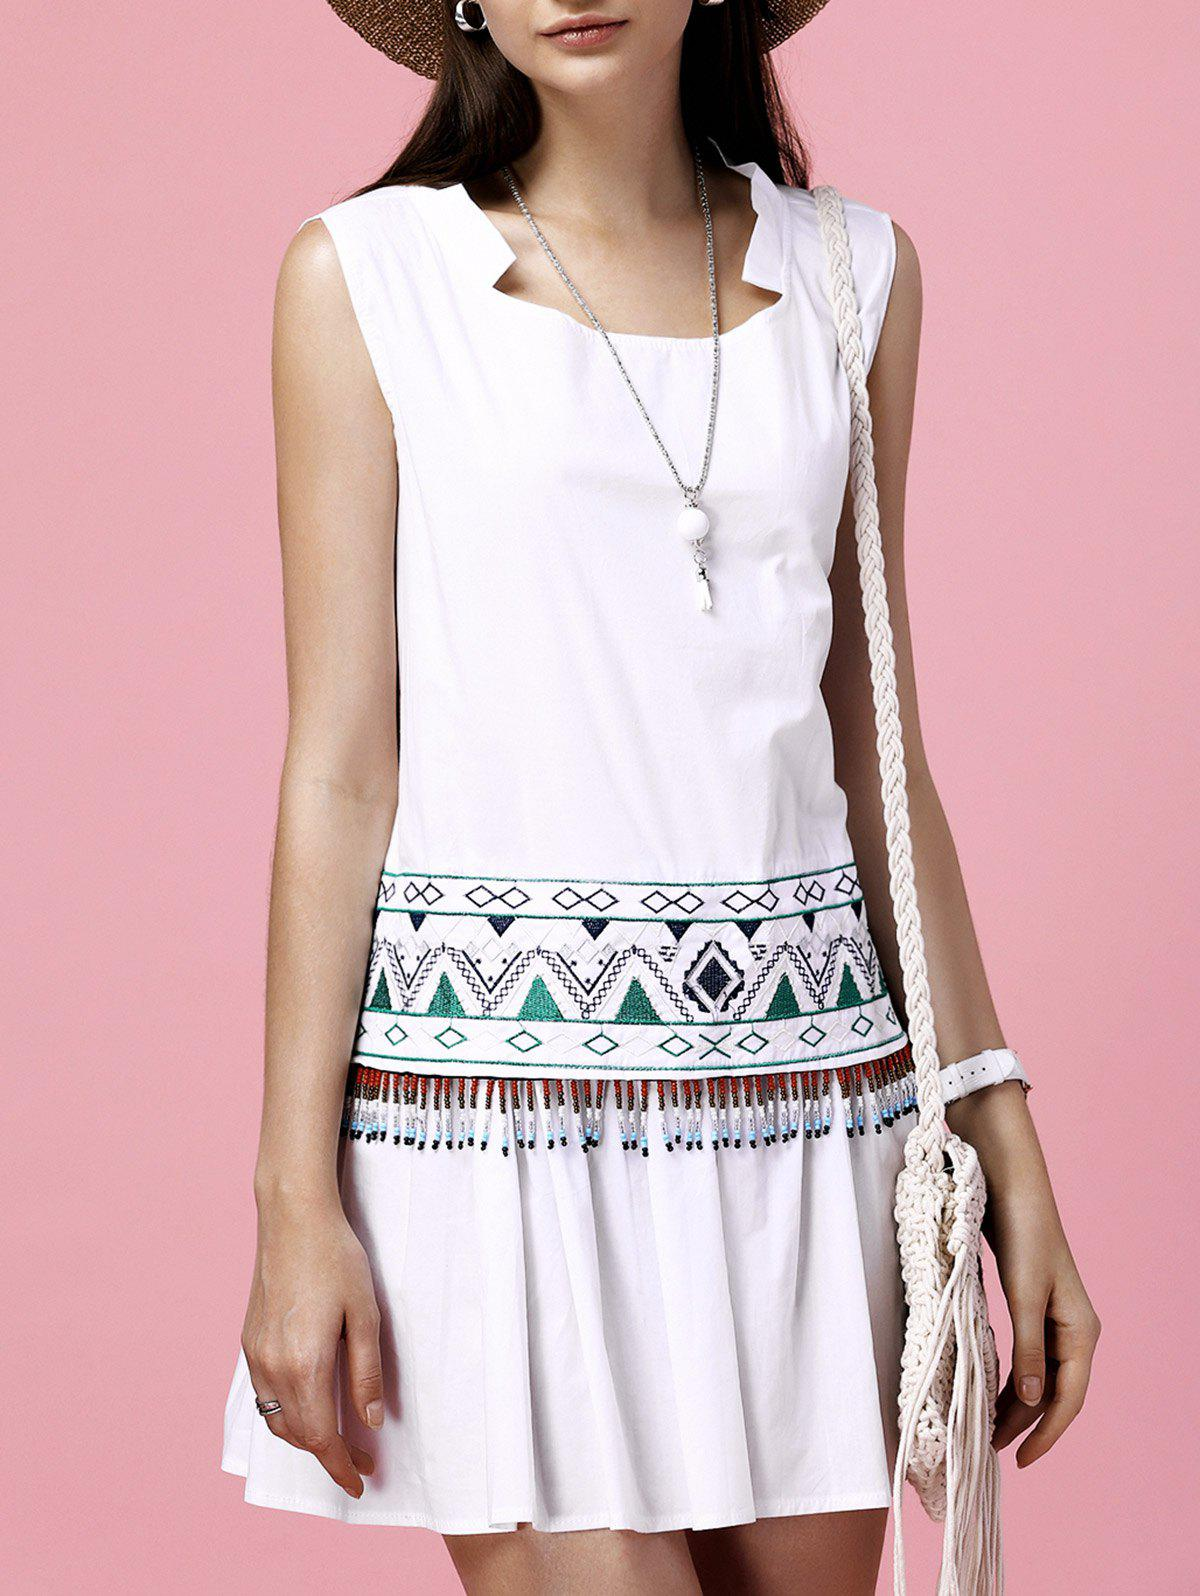 Beaded Geometric Embroidered Flounce Hem Brief Women's Dress - WHITE ONE SIZE(FIT SIZE XS TO M)